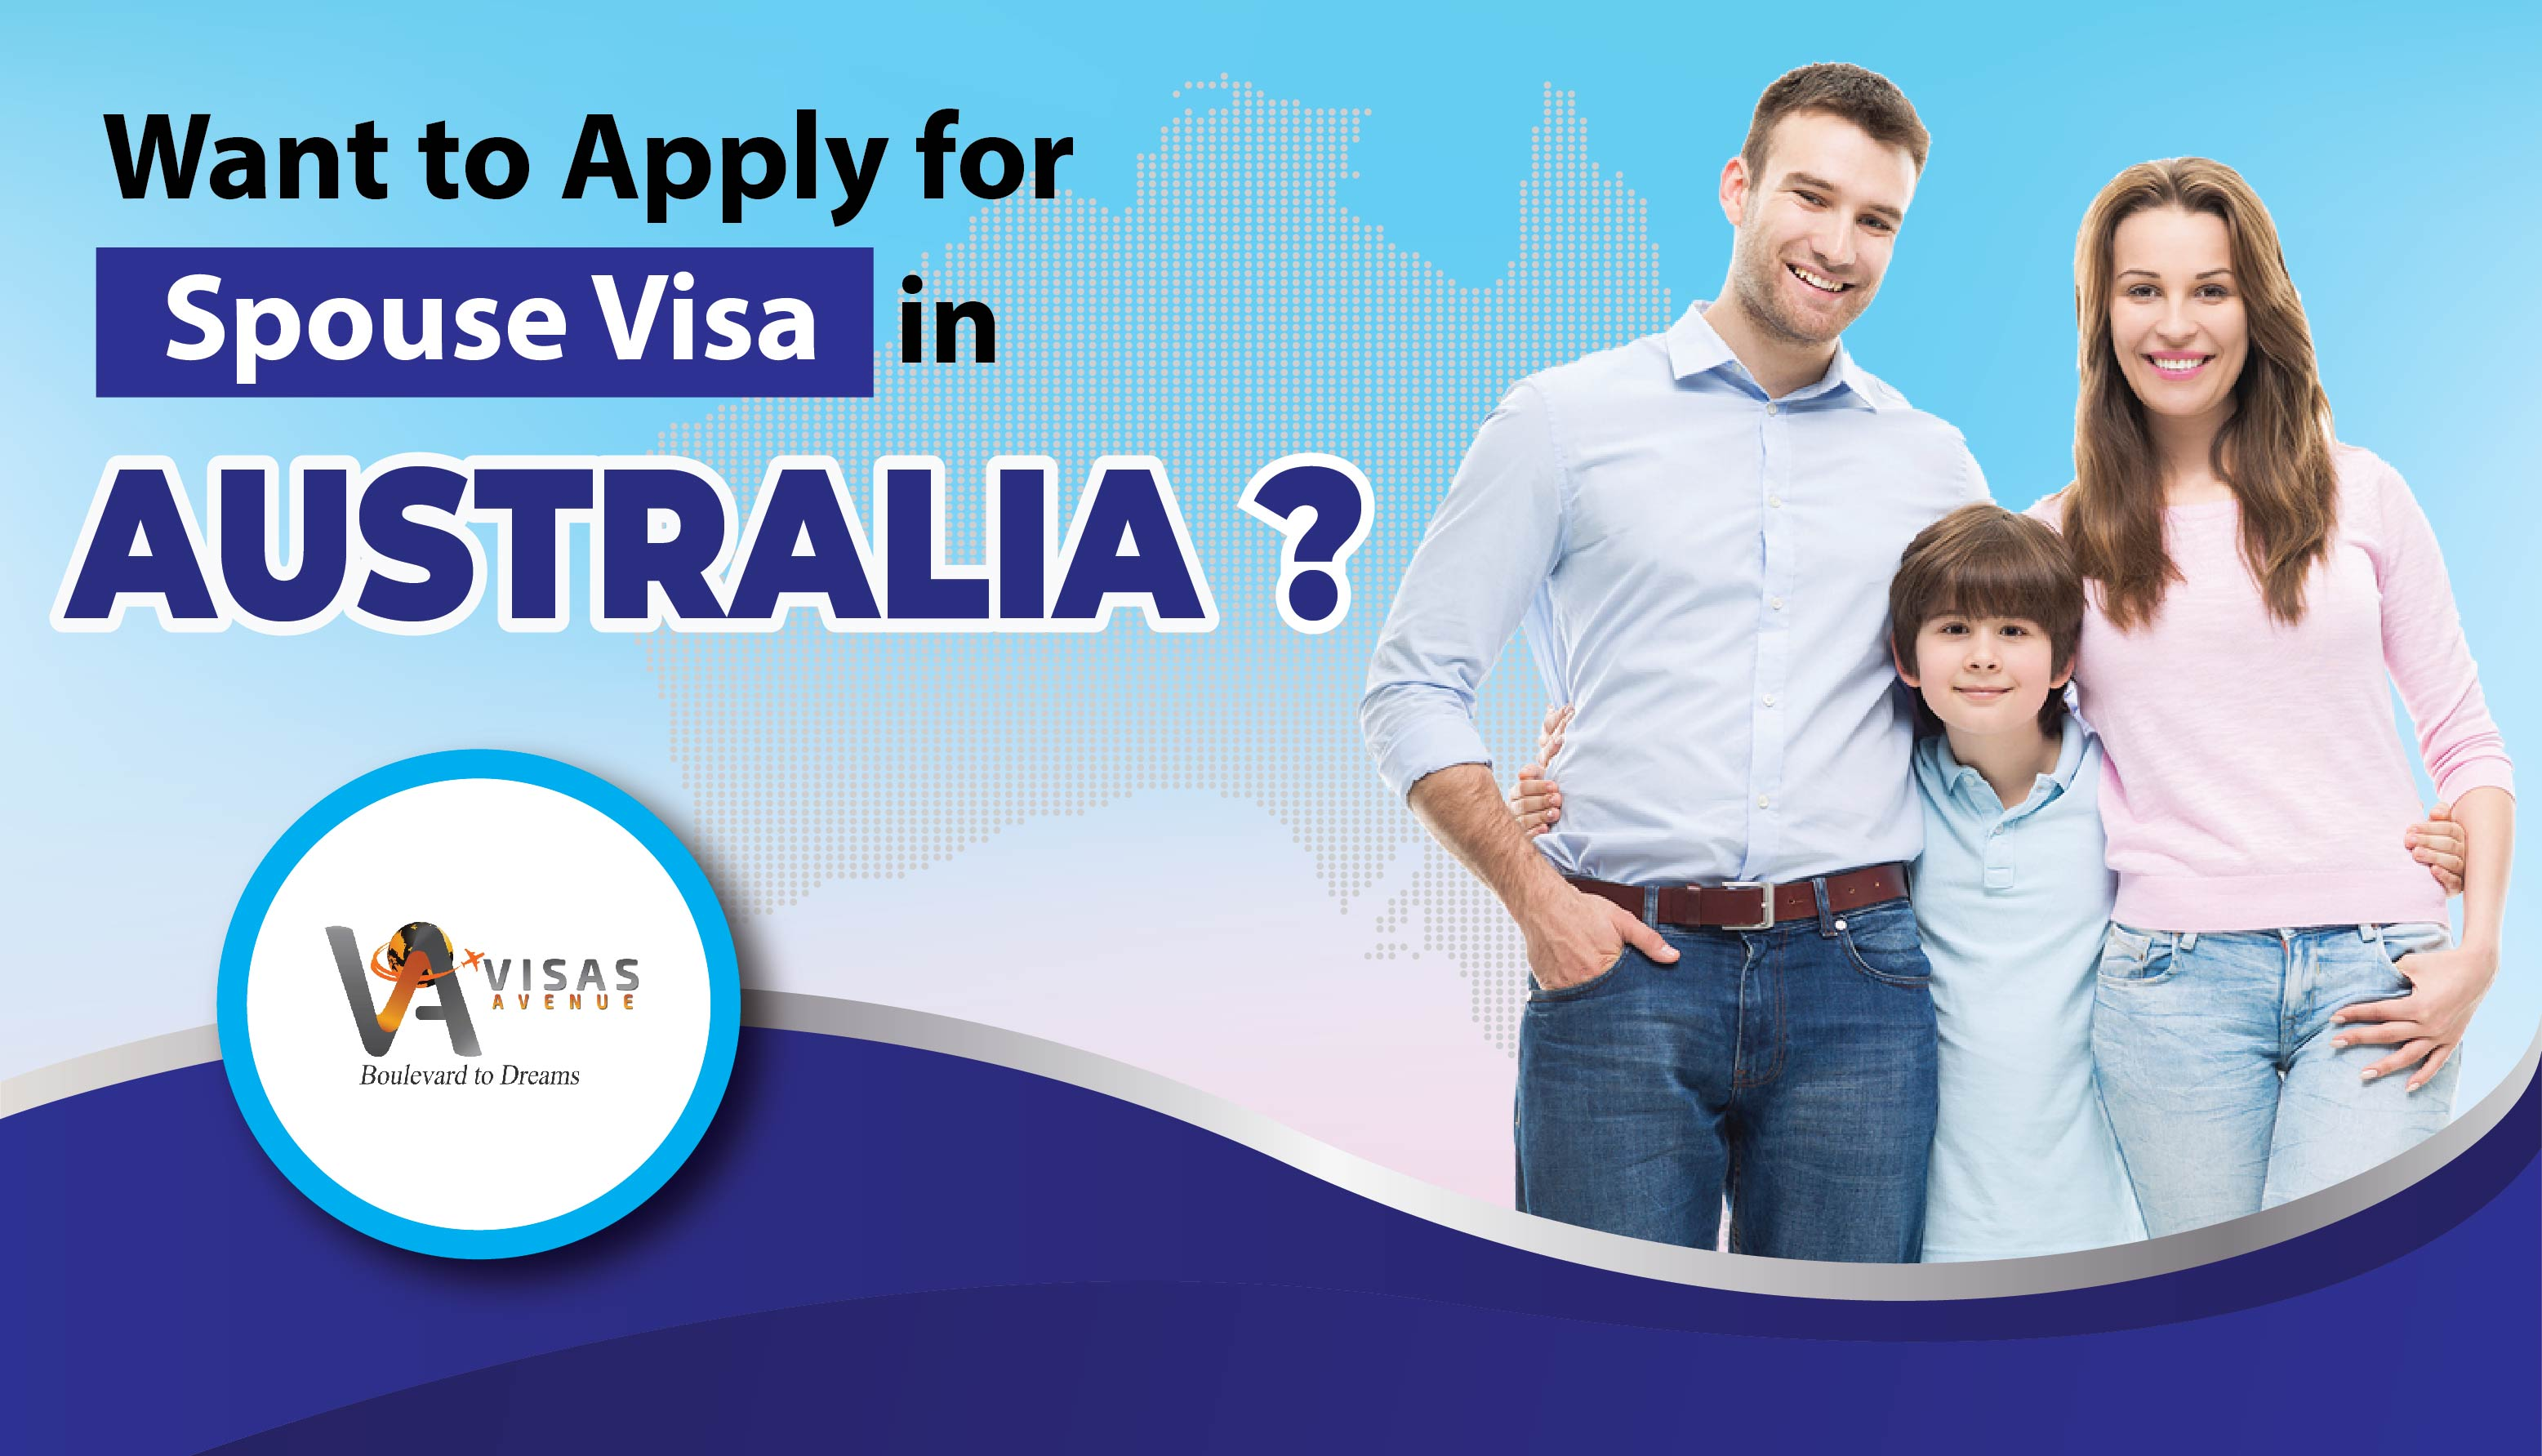 Apply for Spouse Visa in Australia